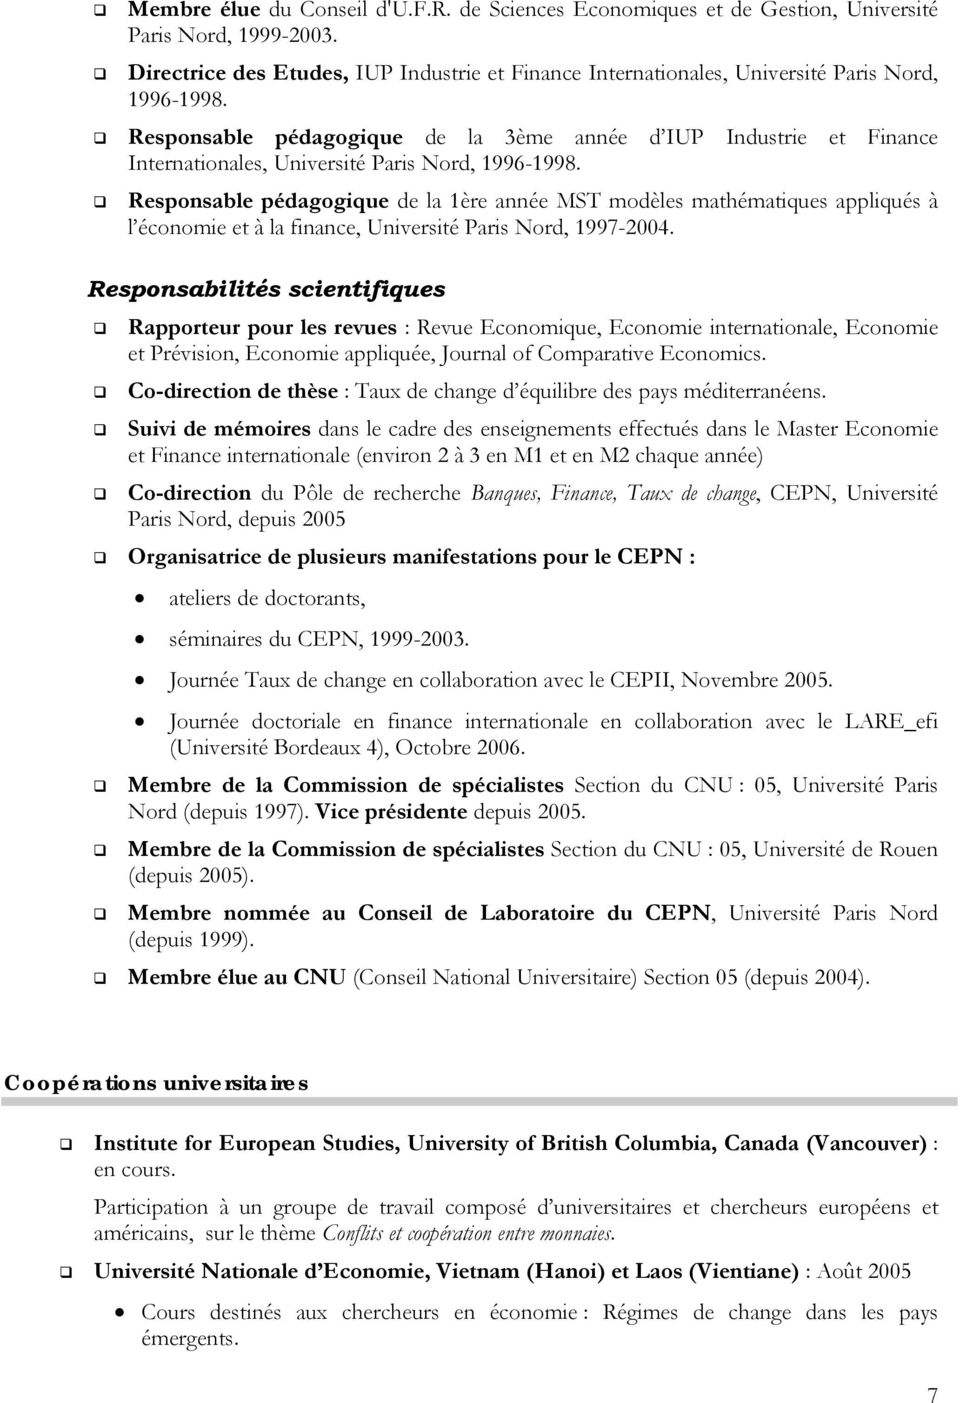 Responsable pédagogique de la 3ème année d IUP Industrie et Finance Internationales, Université Paris Nord, 1996-1998.